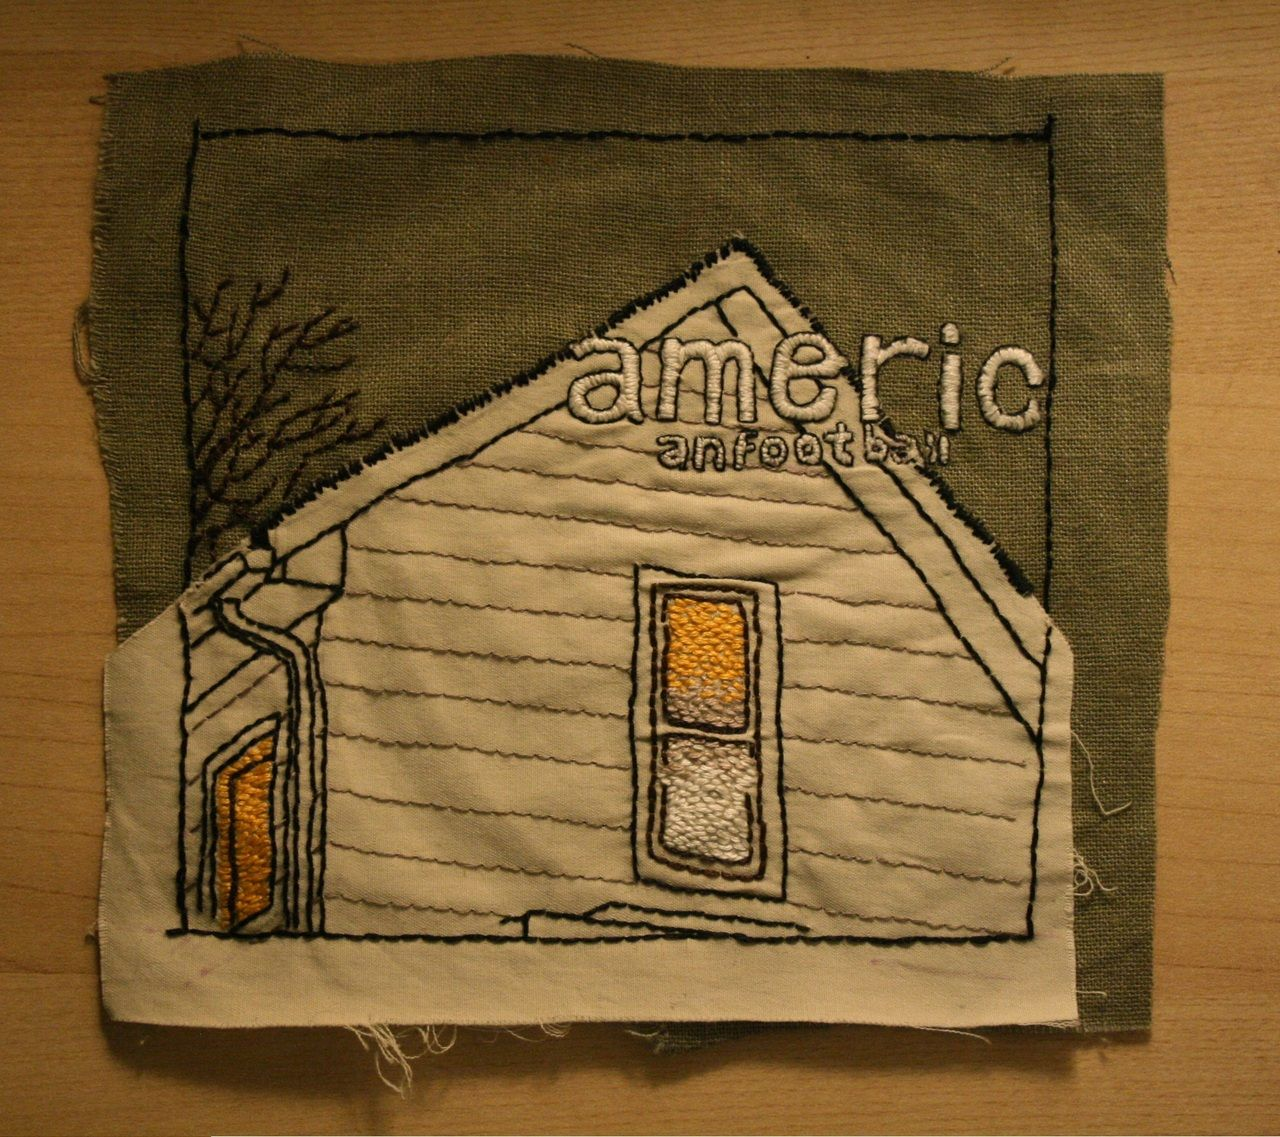 american football band cover art design interested in pinning